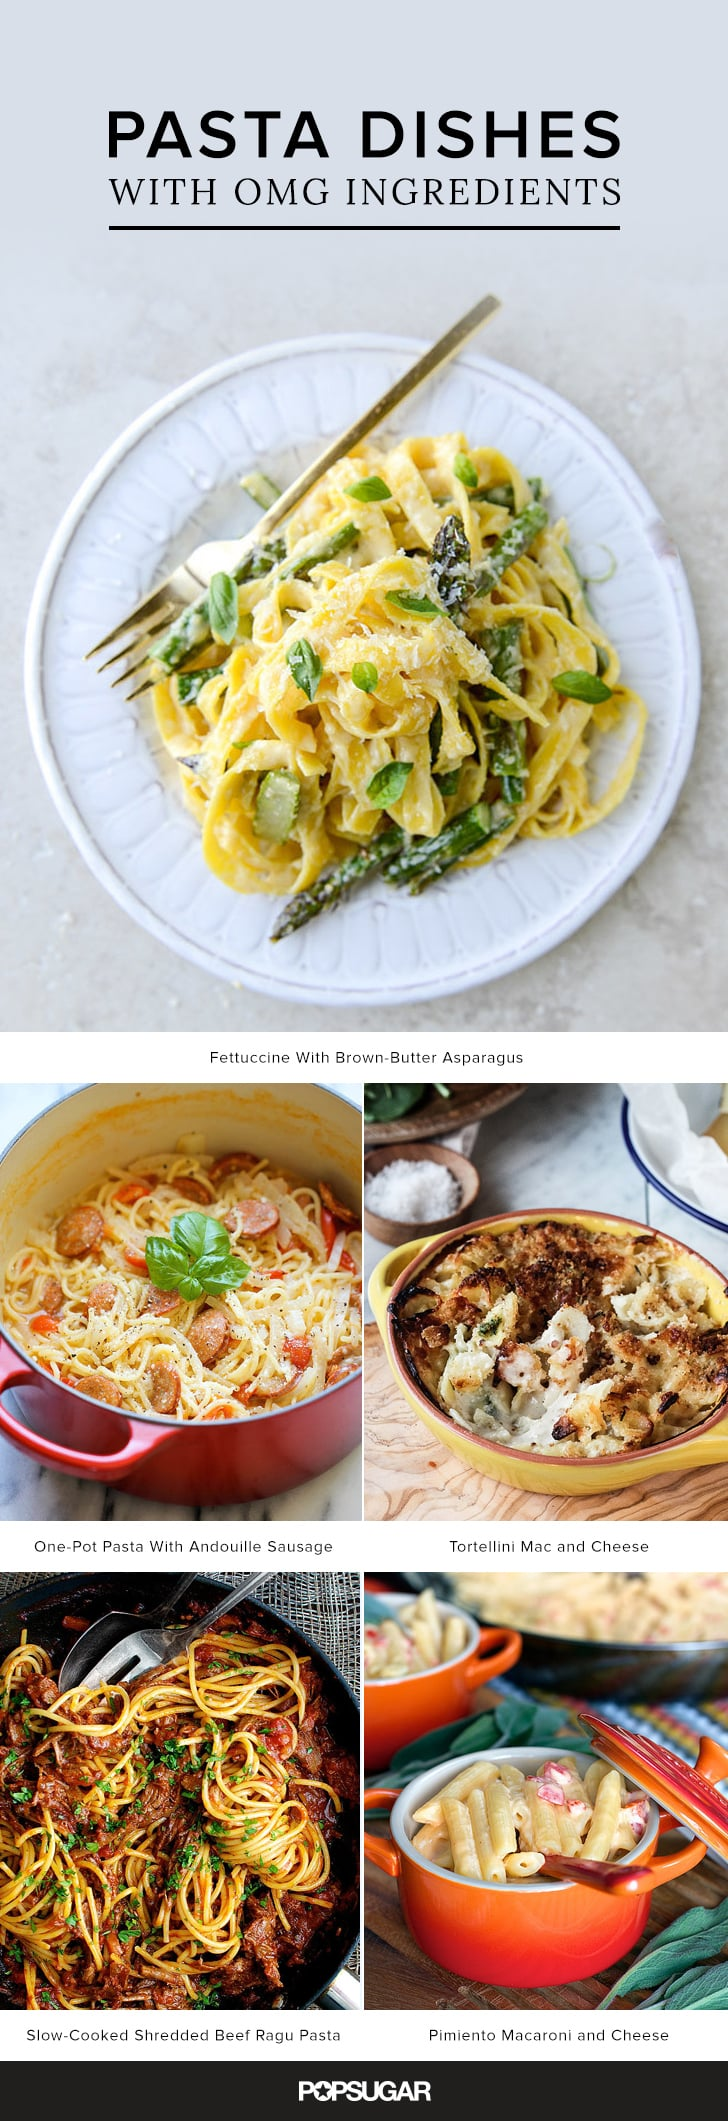 20+ Pasta Dishes With OMG Ingredients